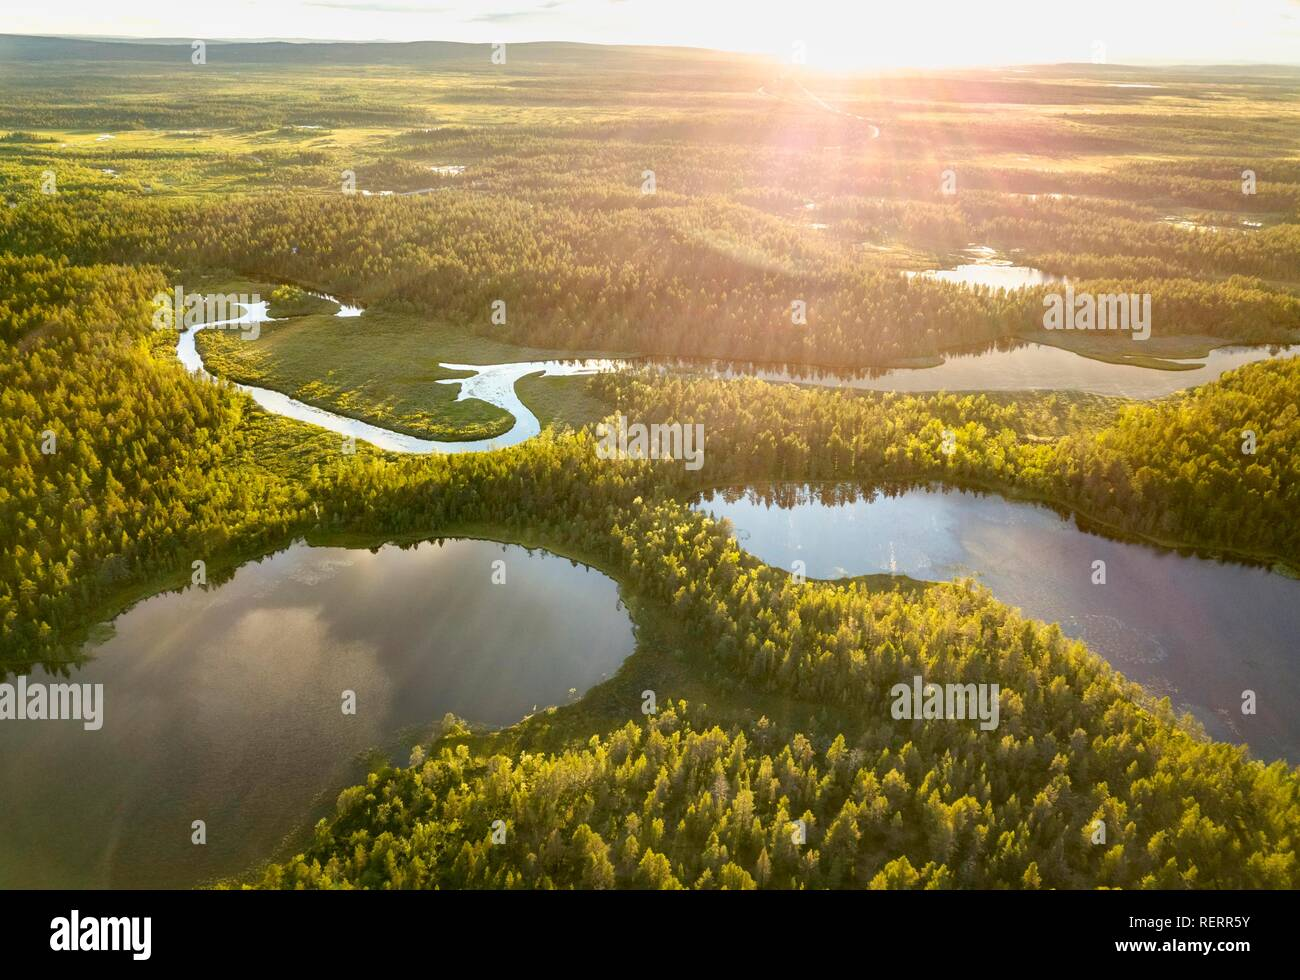 Drone view, aerial photo of Vuontisjärvi in backlight, small lakes and meanders, river loops in boreal arctic forest with - Stock Image